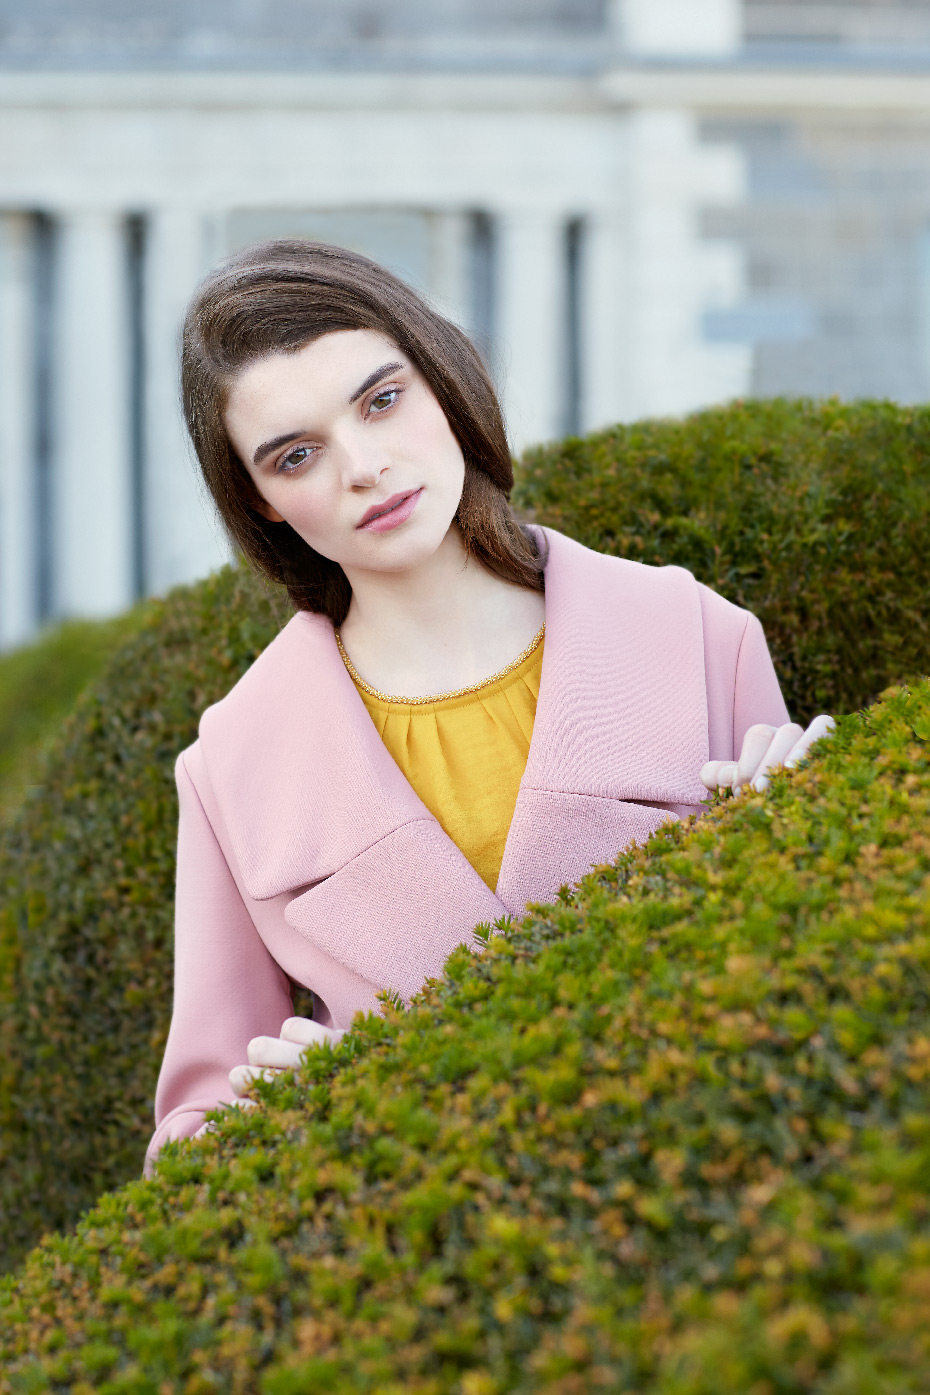 Stacey Van Berkel Photography I Pretty in Pink Fashion Shoot I Mustard Yellow + Blush Pink I Carton House I Kildare, Ireland